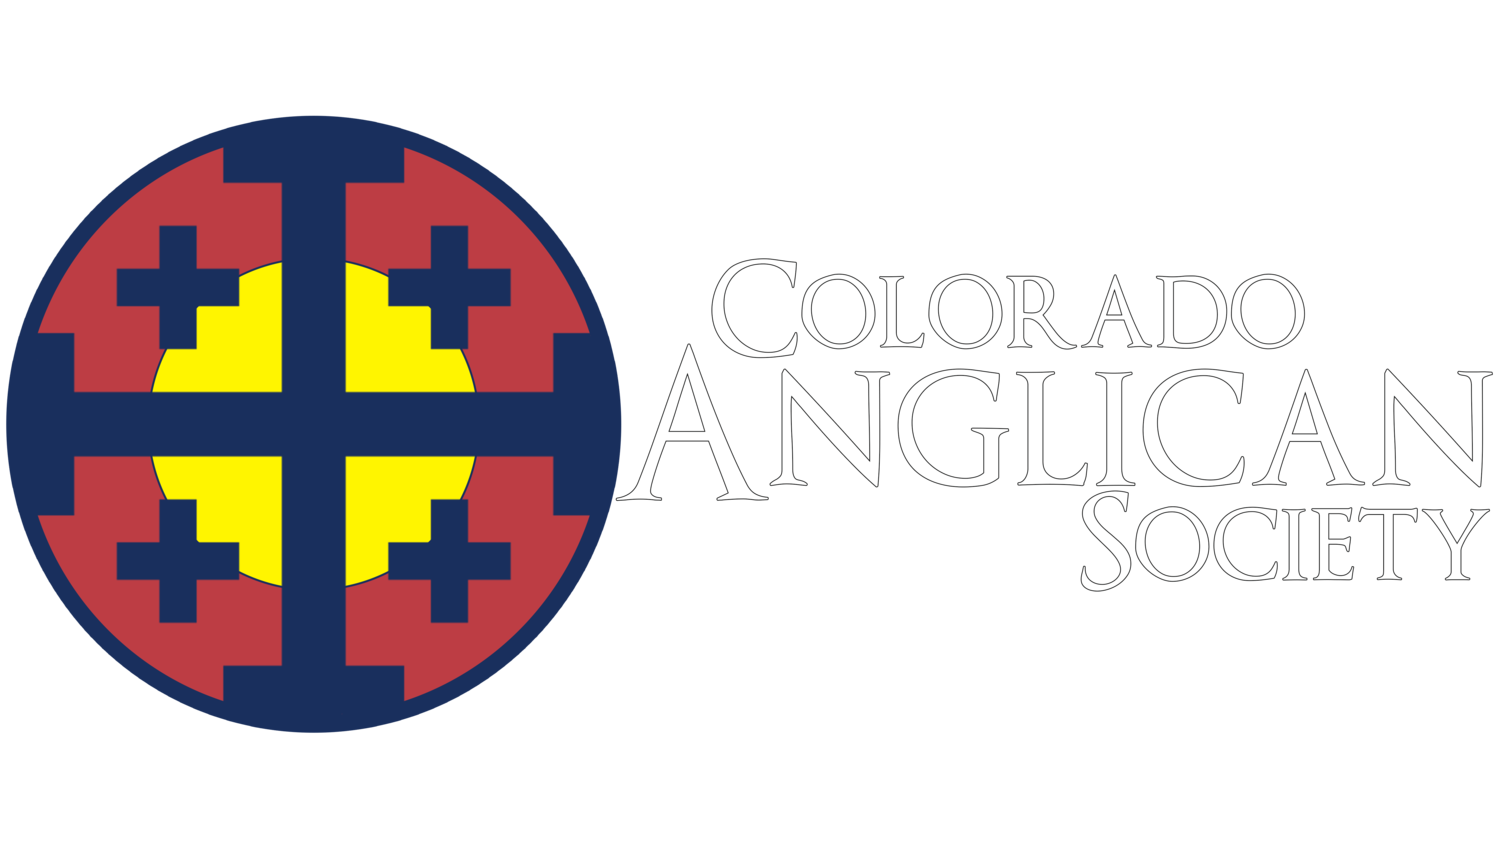 Colorado Anglican Society